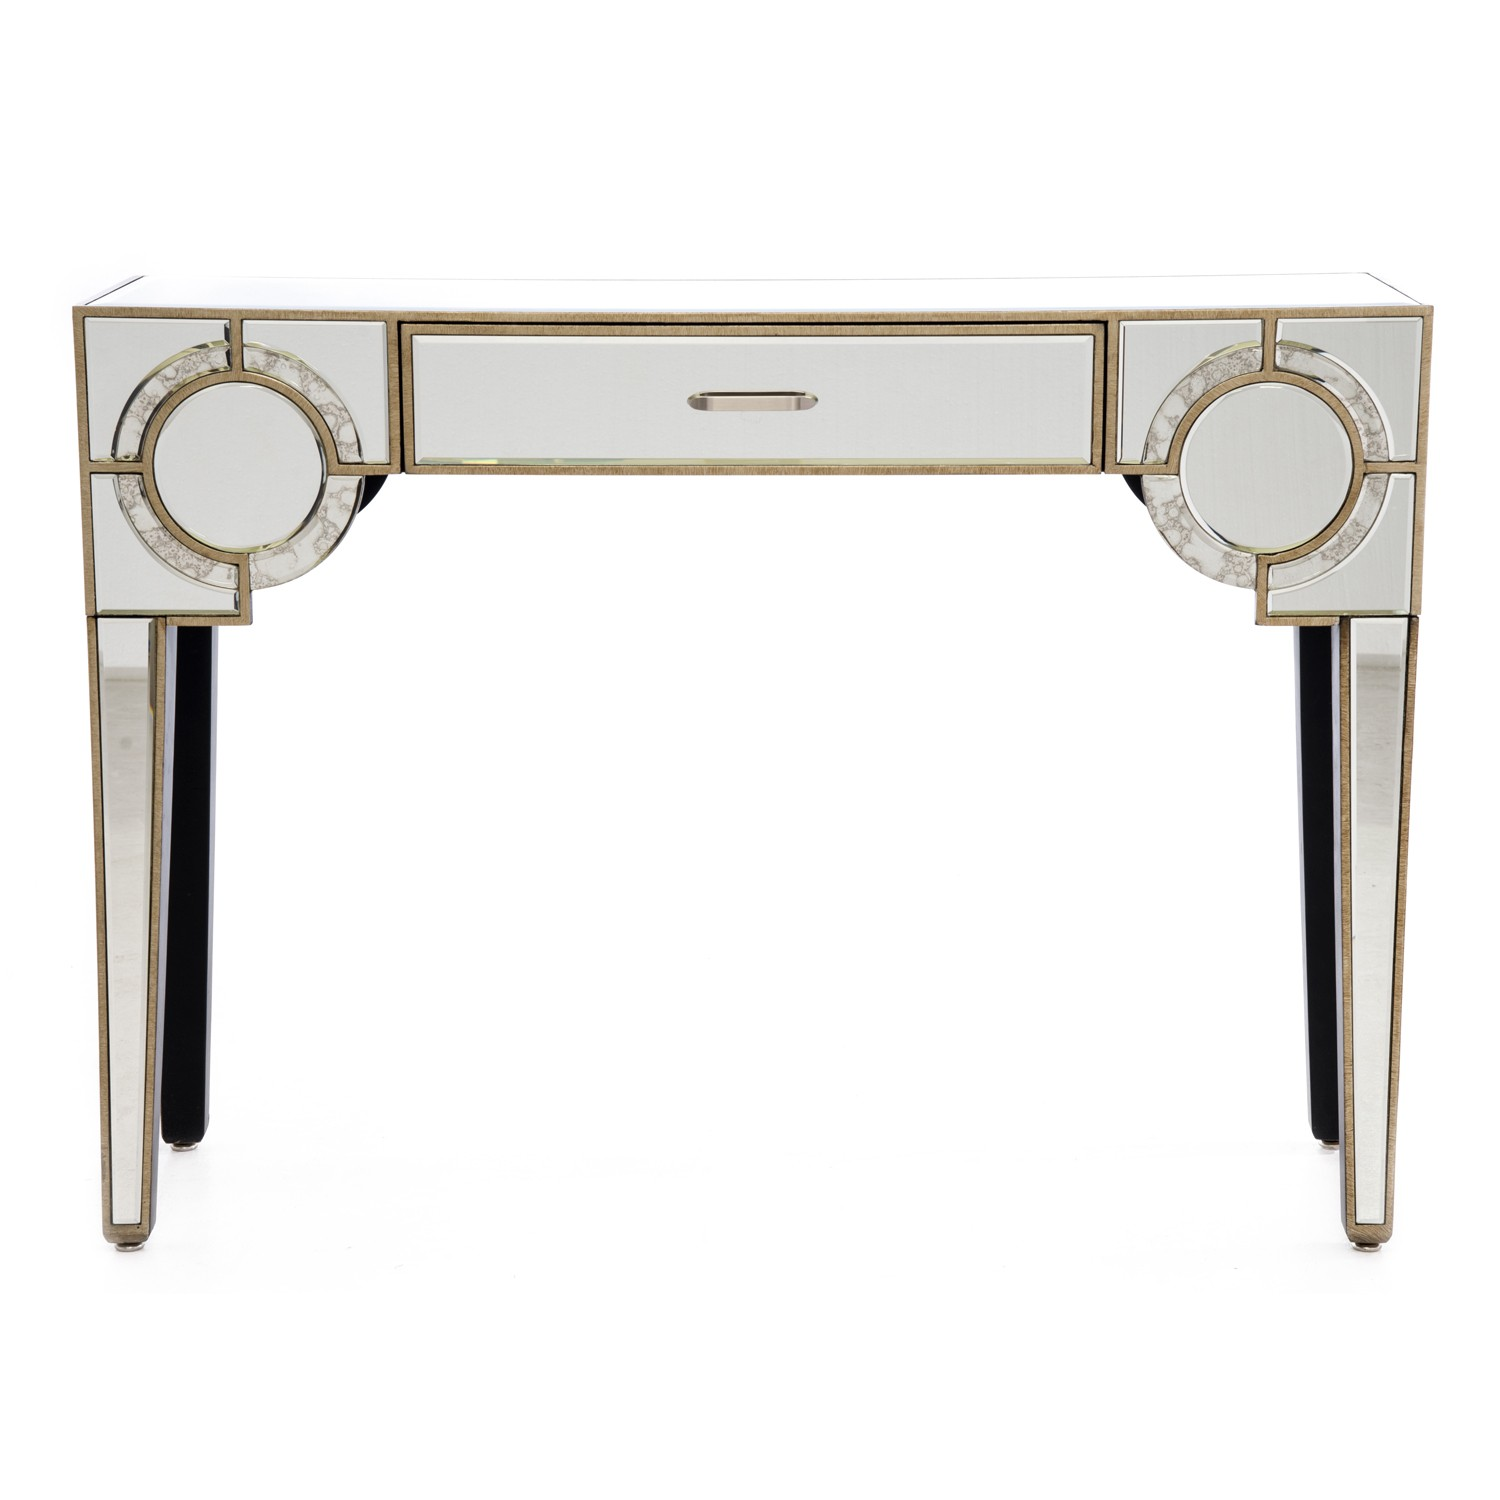 Casa charleston 1 drawer console leekes casa gatsby 1 drawer console antique mirror geotapseo Choice Image